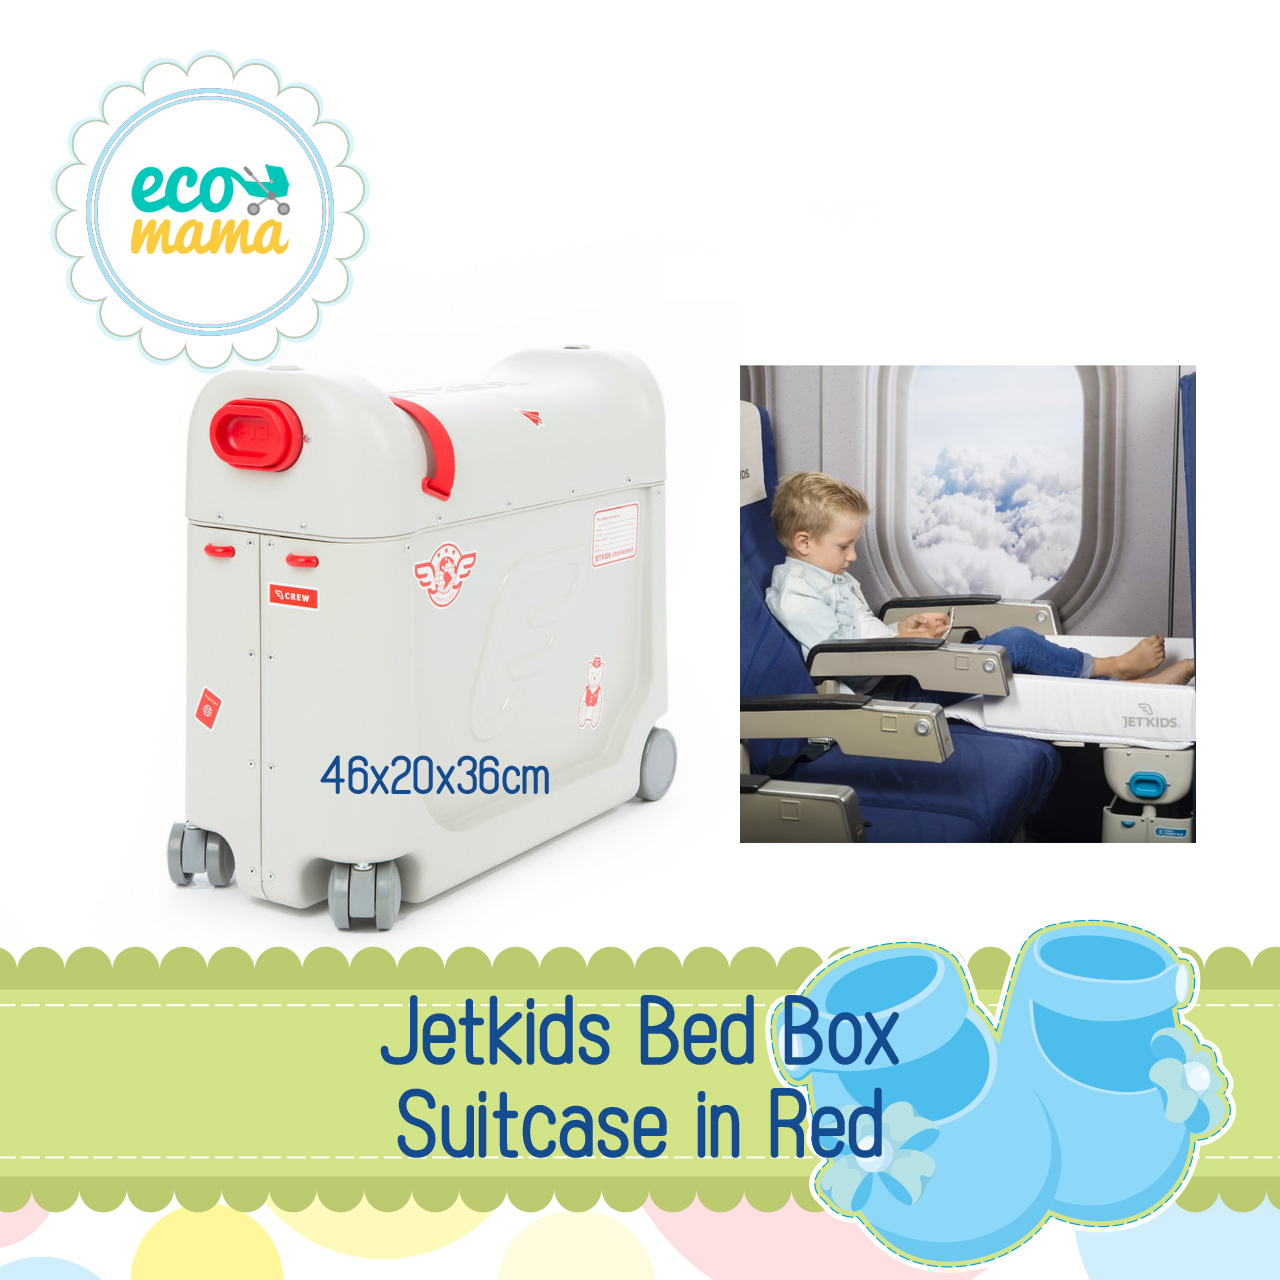 Jetkids Bed Box Suitcase in Red